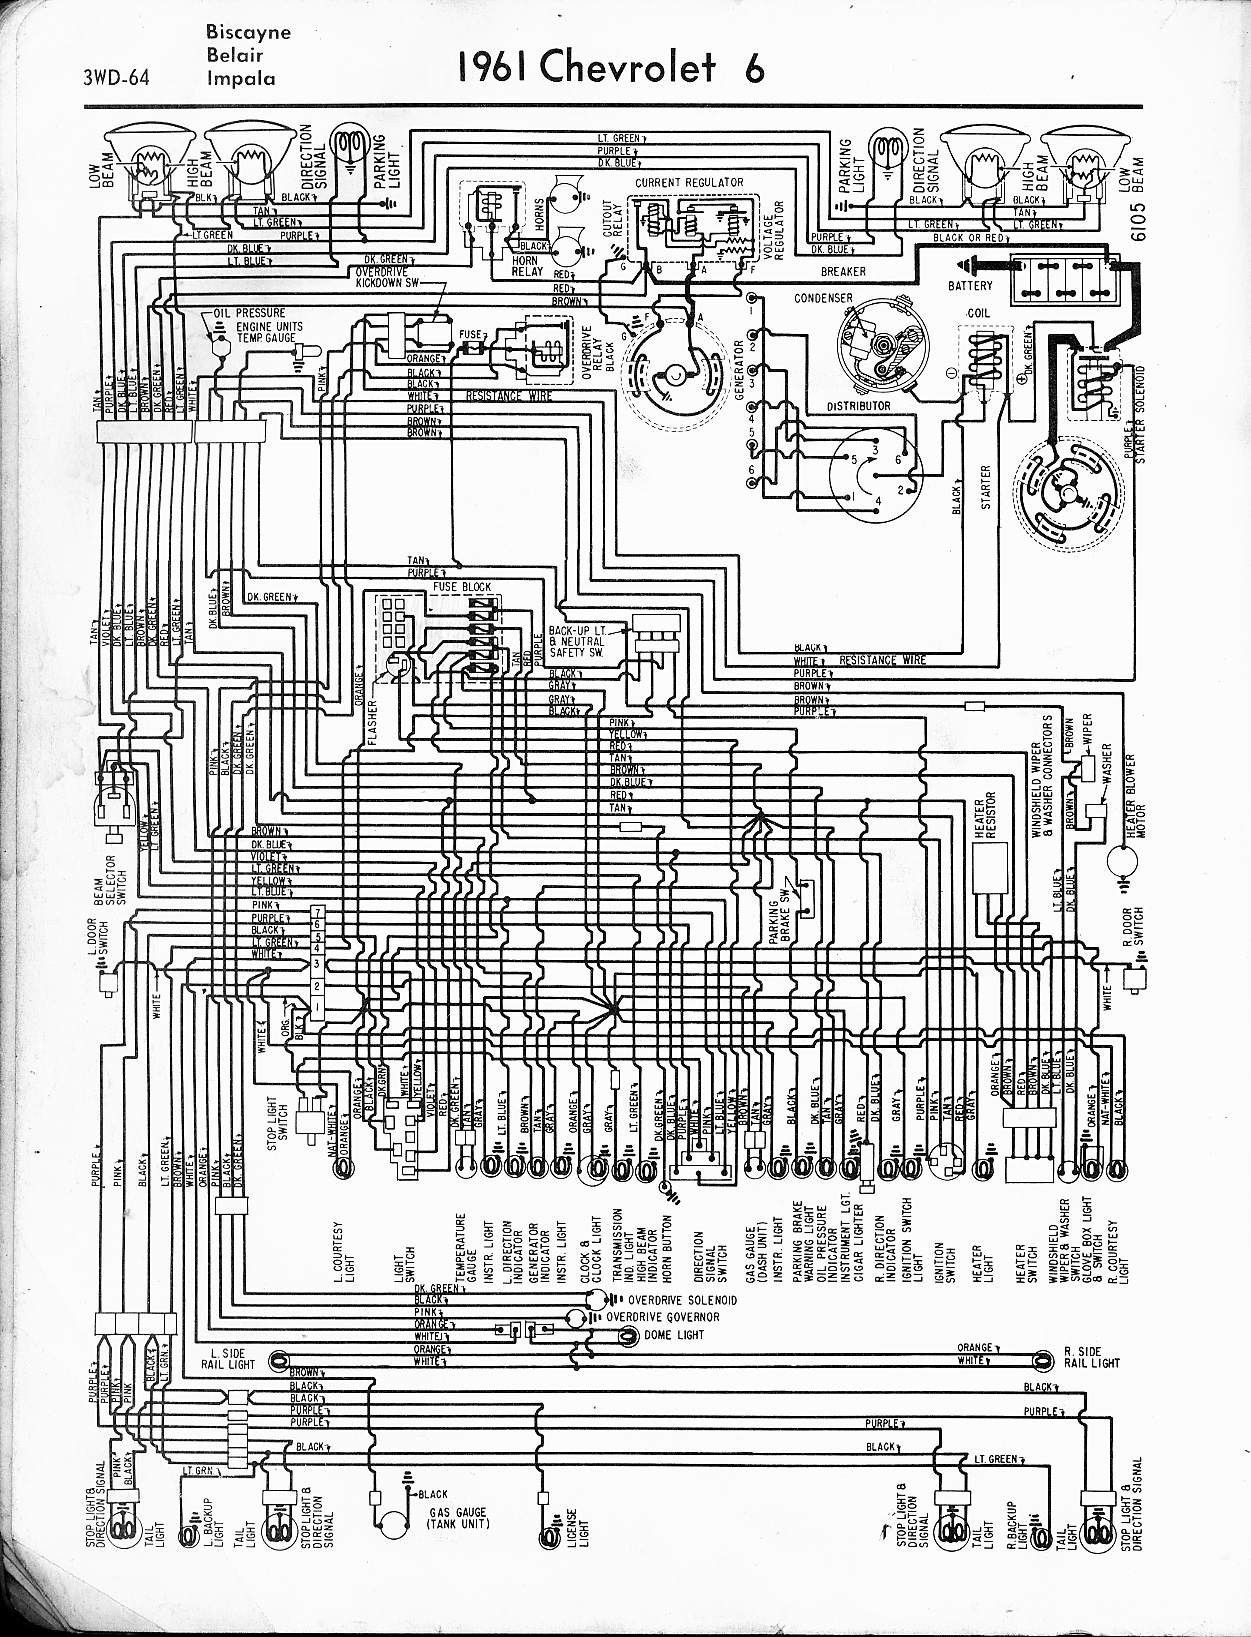 2000 Chevy Impala Engine Diagram Impala Ignition Coil Wiring Diagram Free Image About Wiring Diagram Of 2000 Chevy Impala Engine Diagram